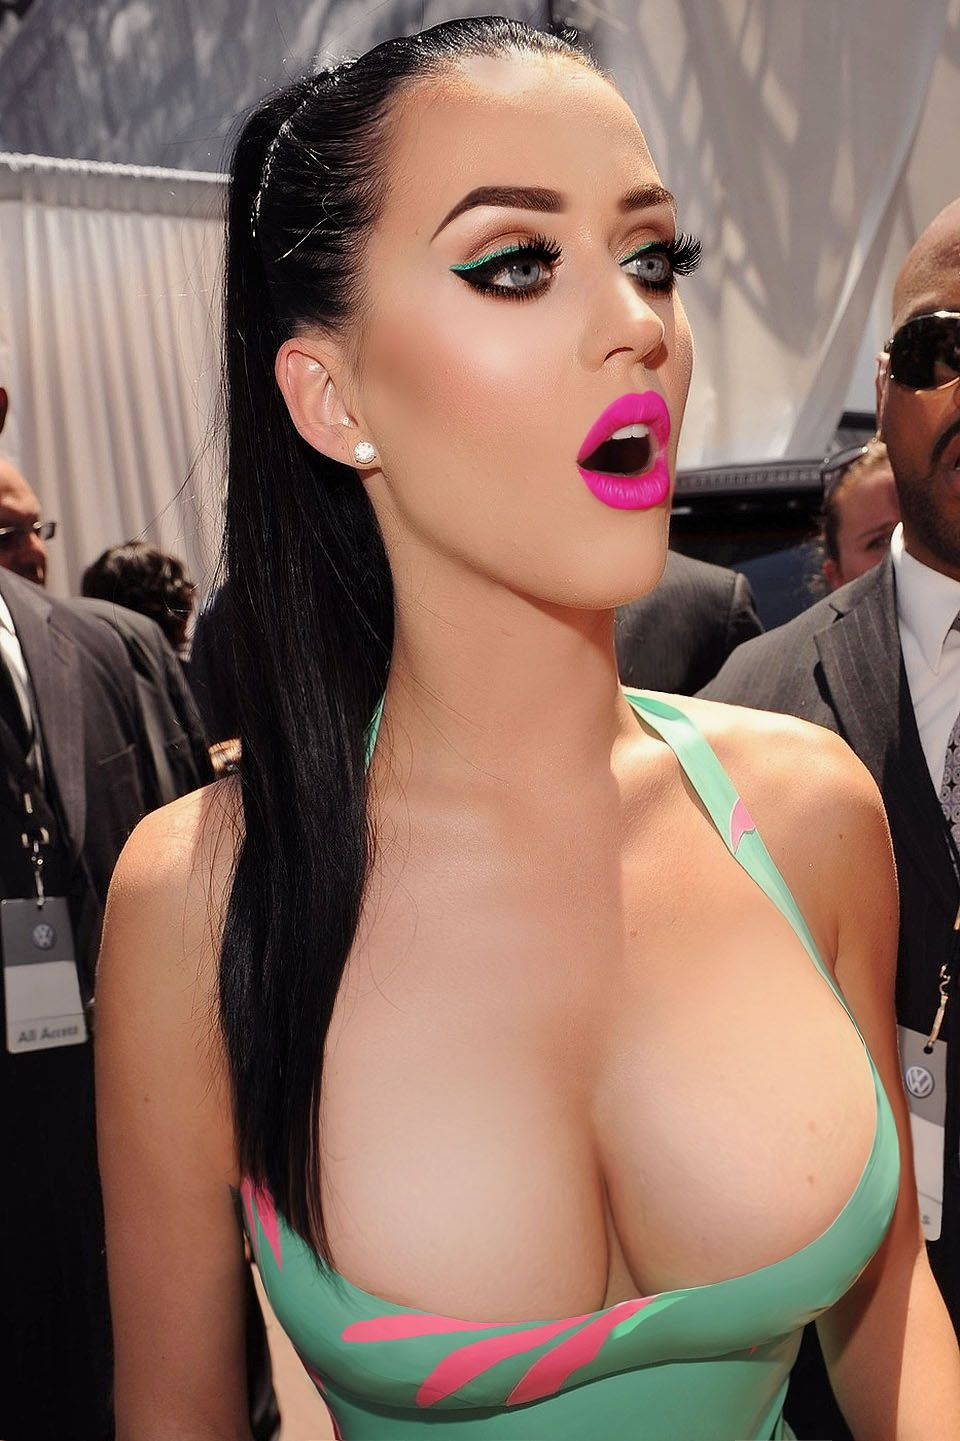 Katy Perry perfect boobs and sexy mouth